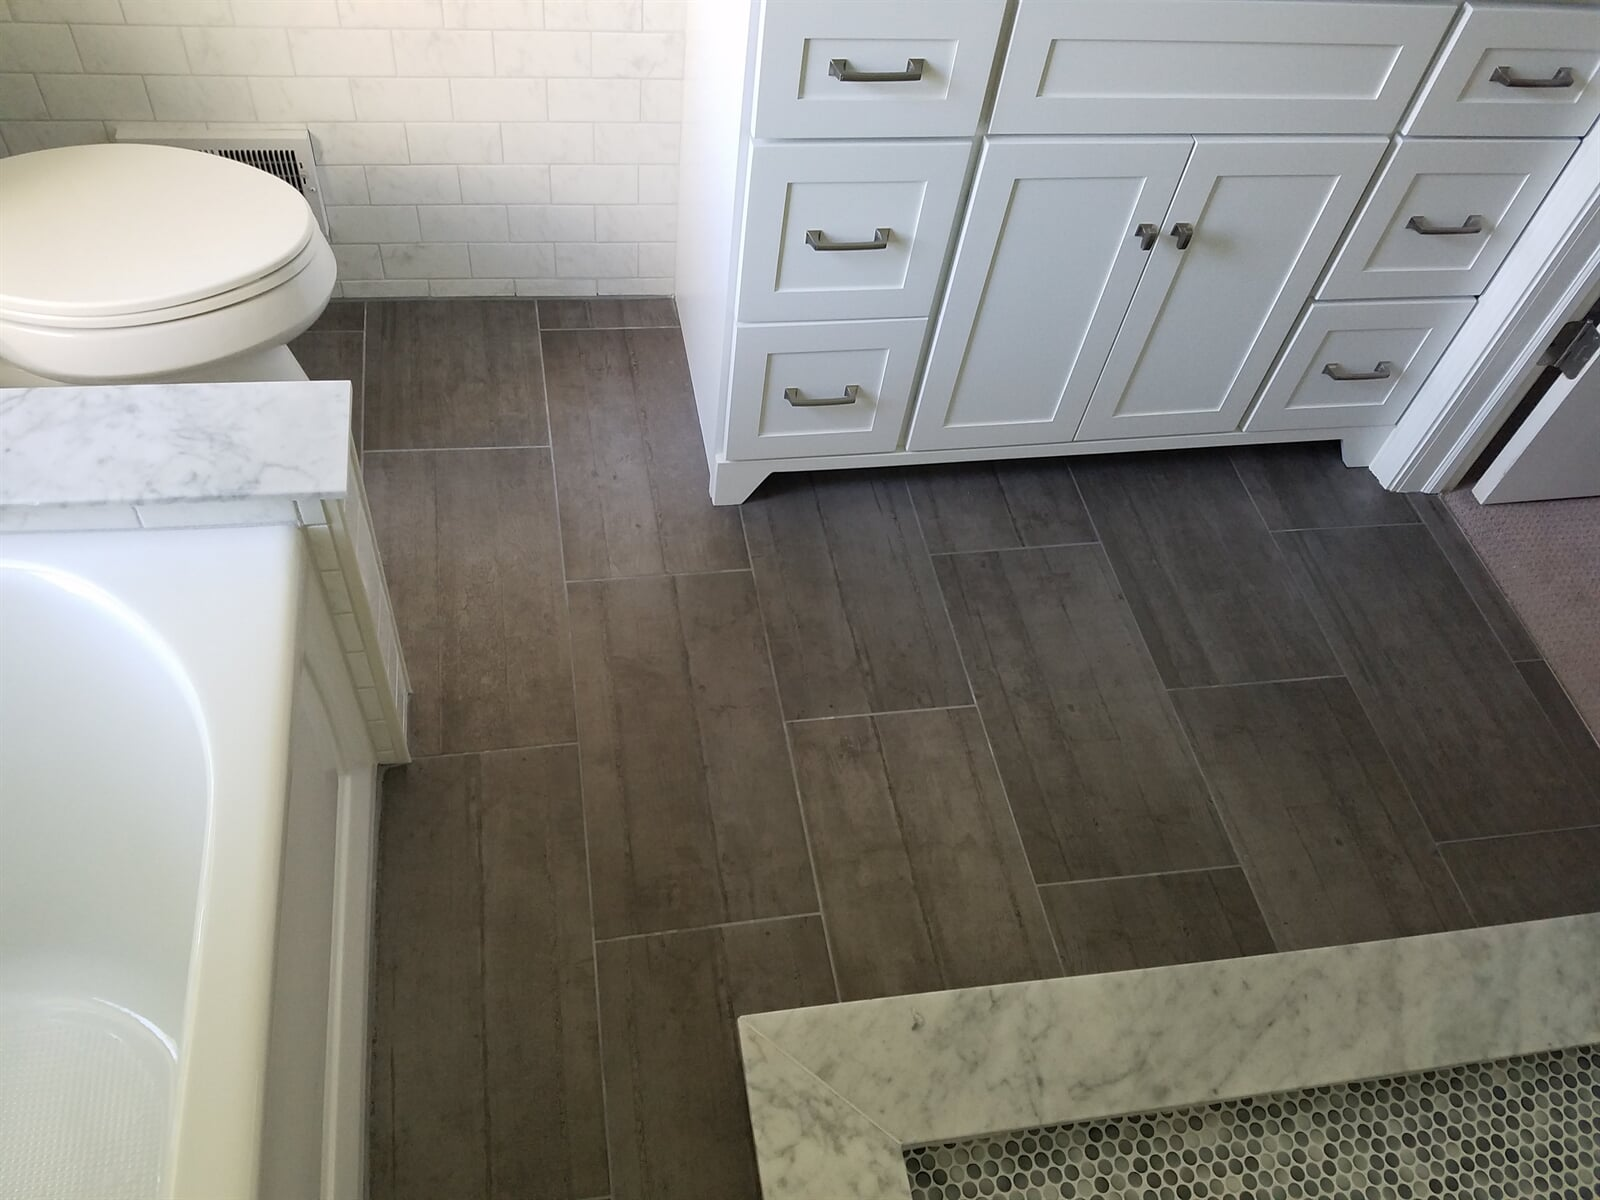 Bathroom Floor Tile installed by RS Home Repair Services